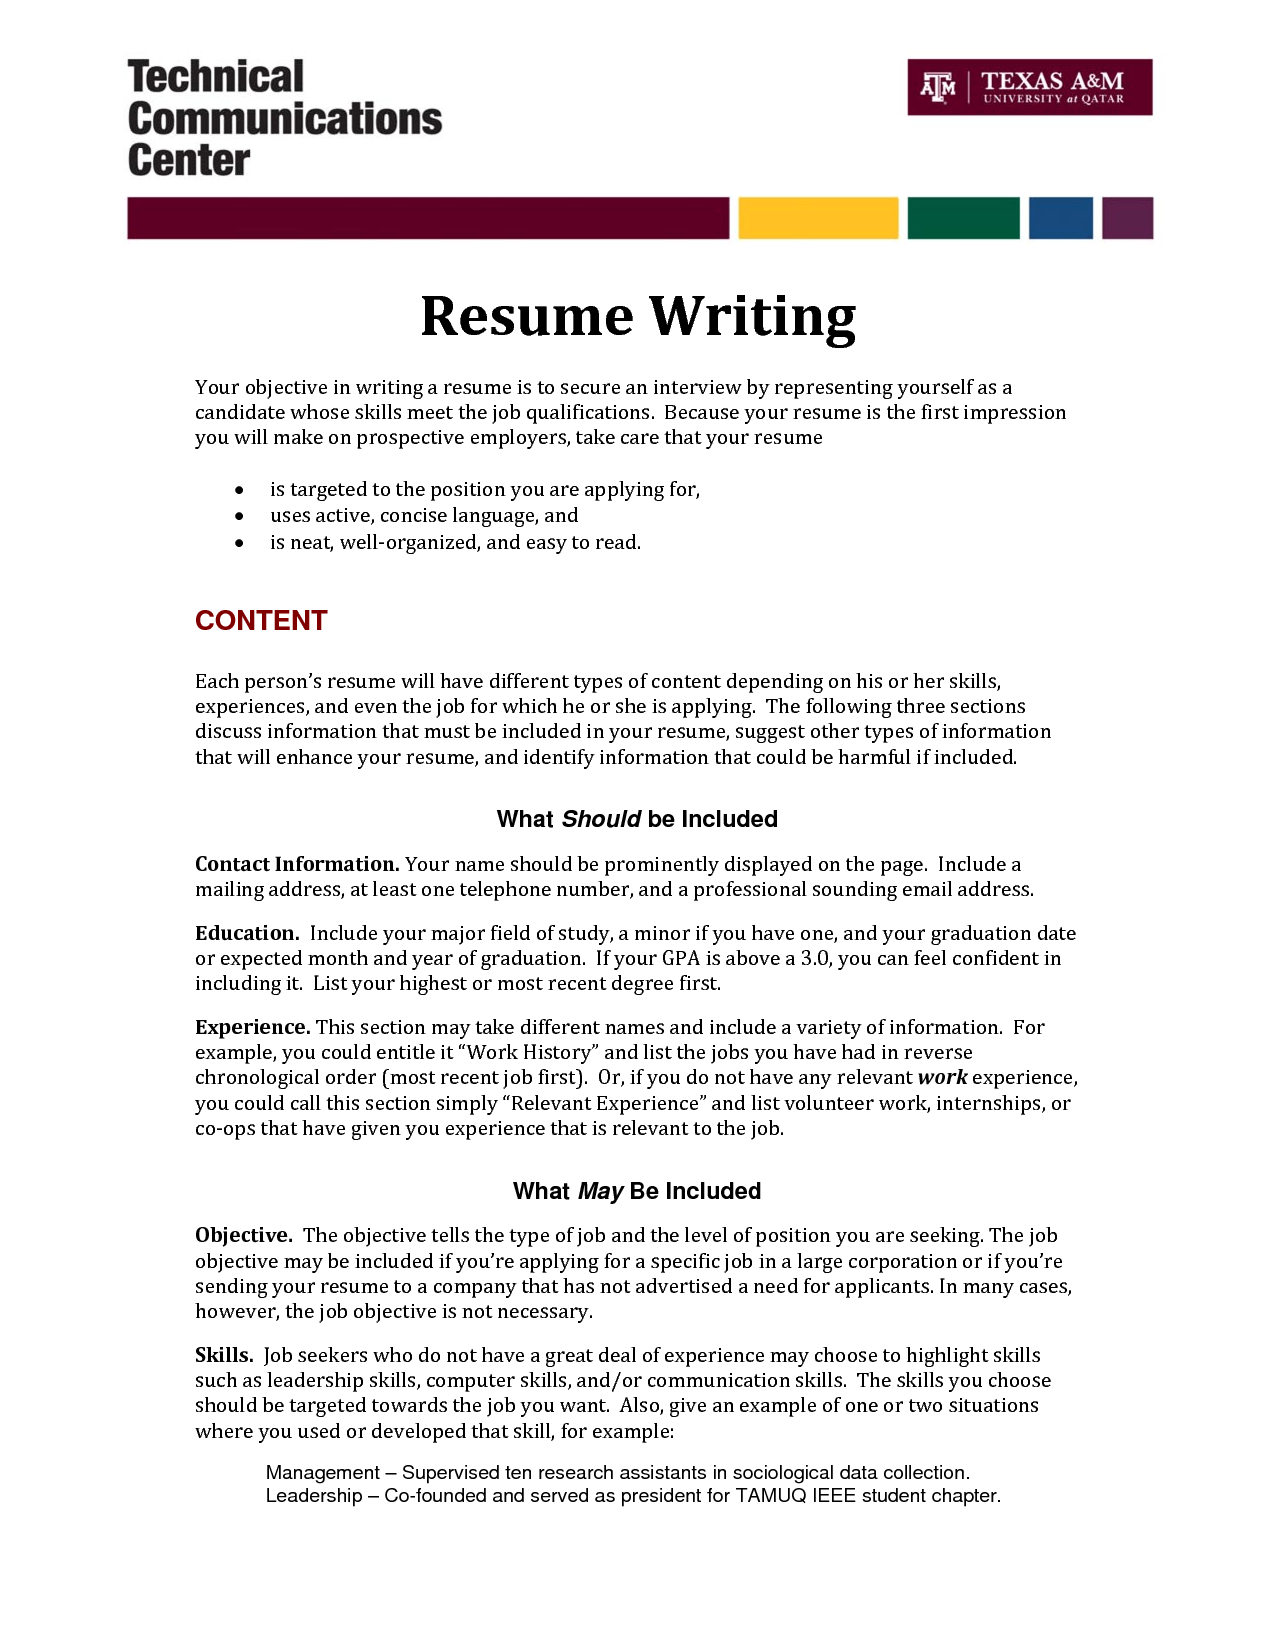 write an objective for a resume